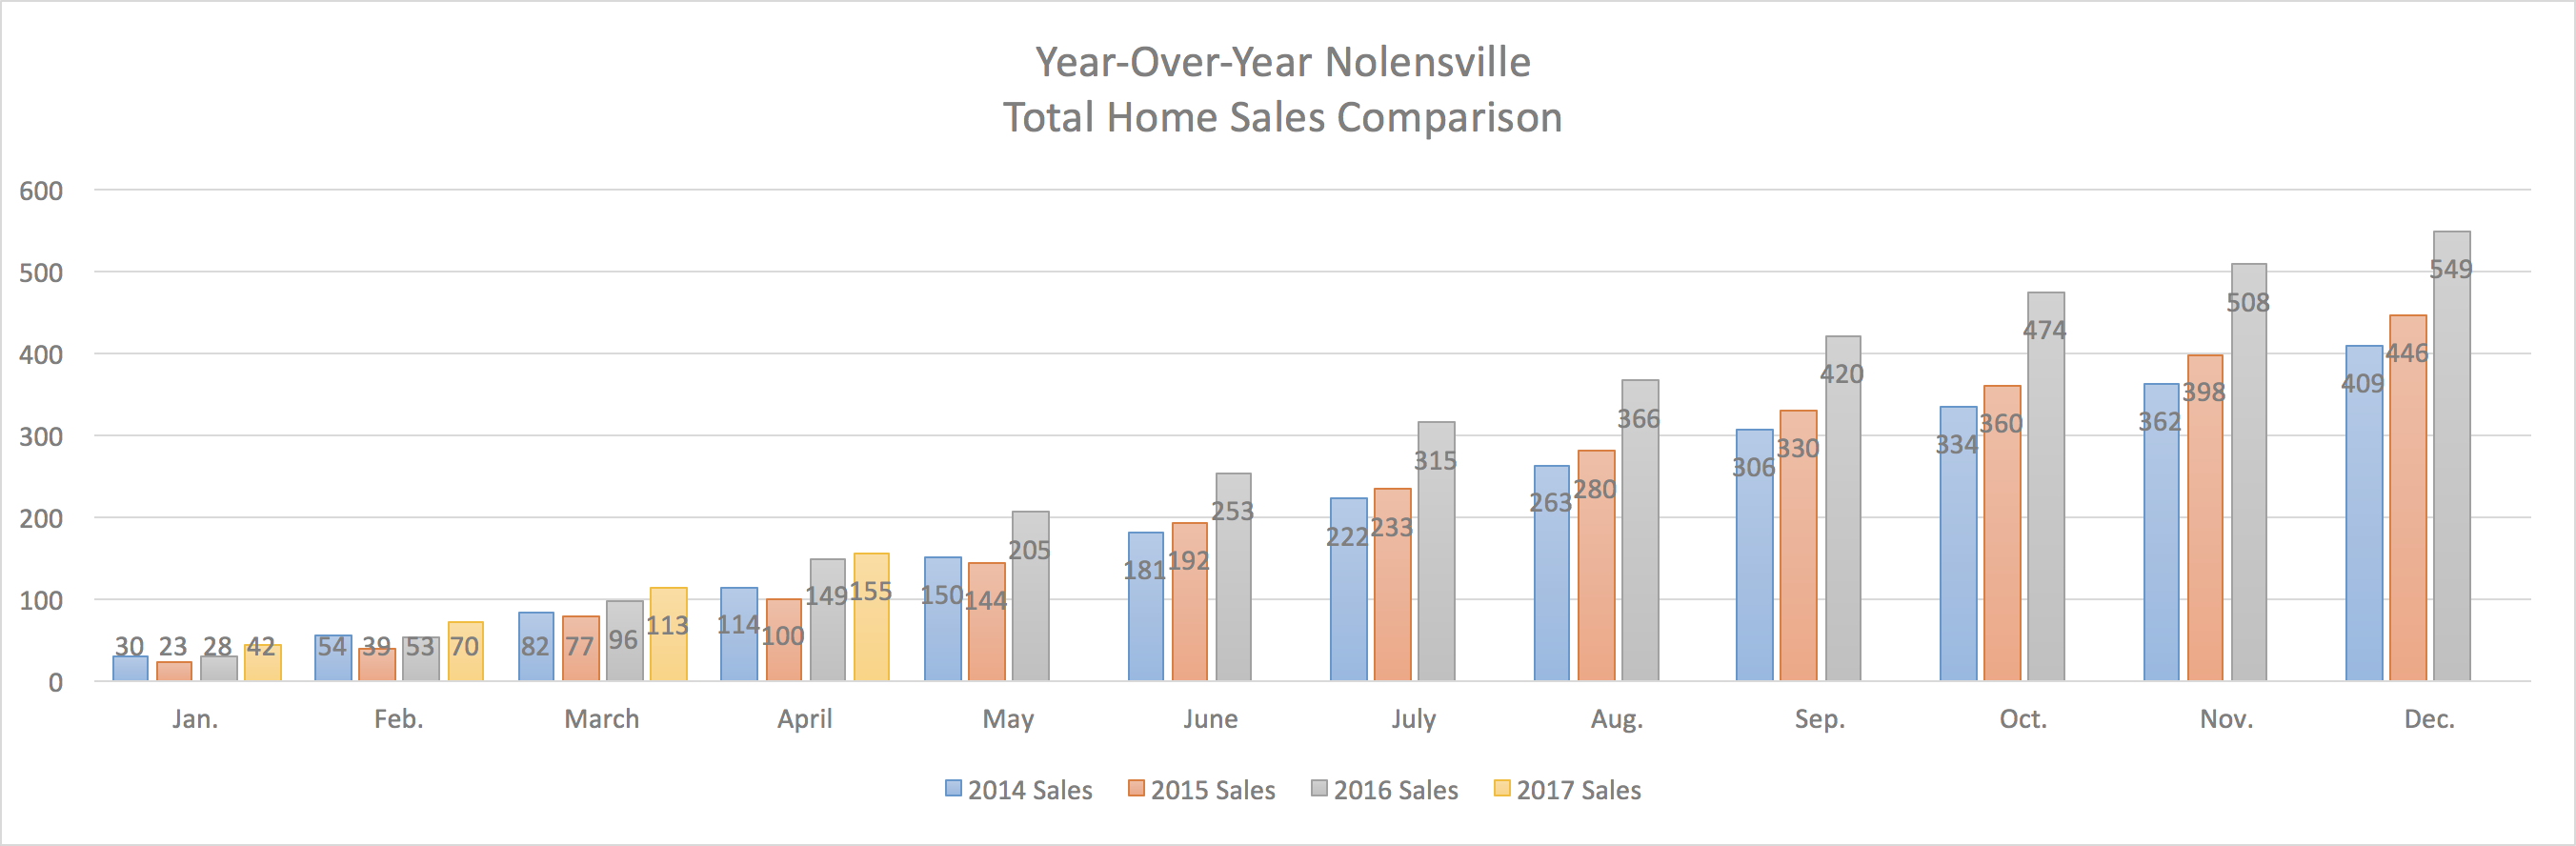 Nolensville Year-Over-Year Home Sales Through April 2017